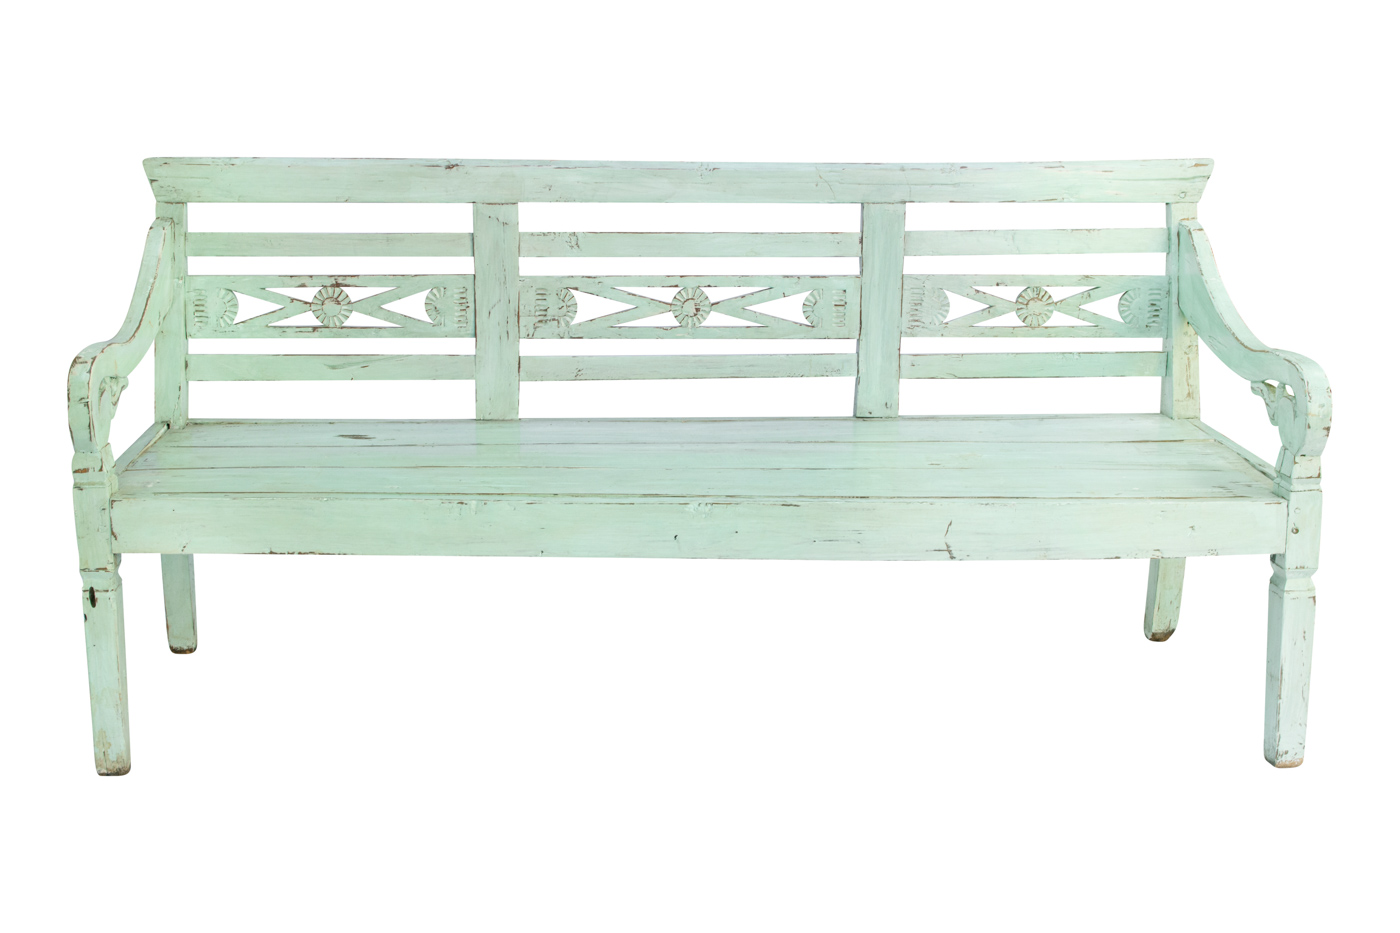 Balinese light green carved bench, 187 Cm